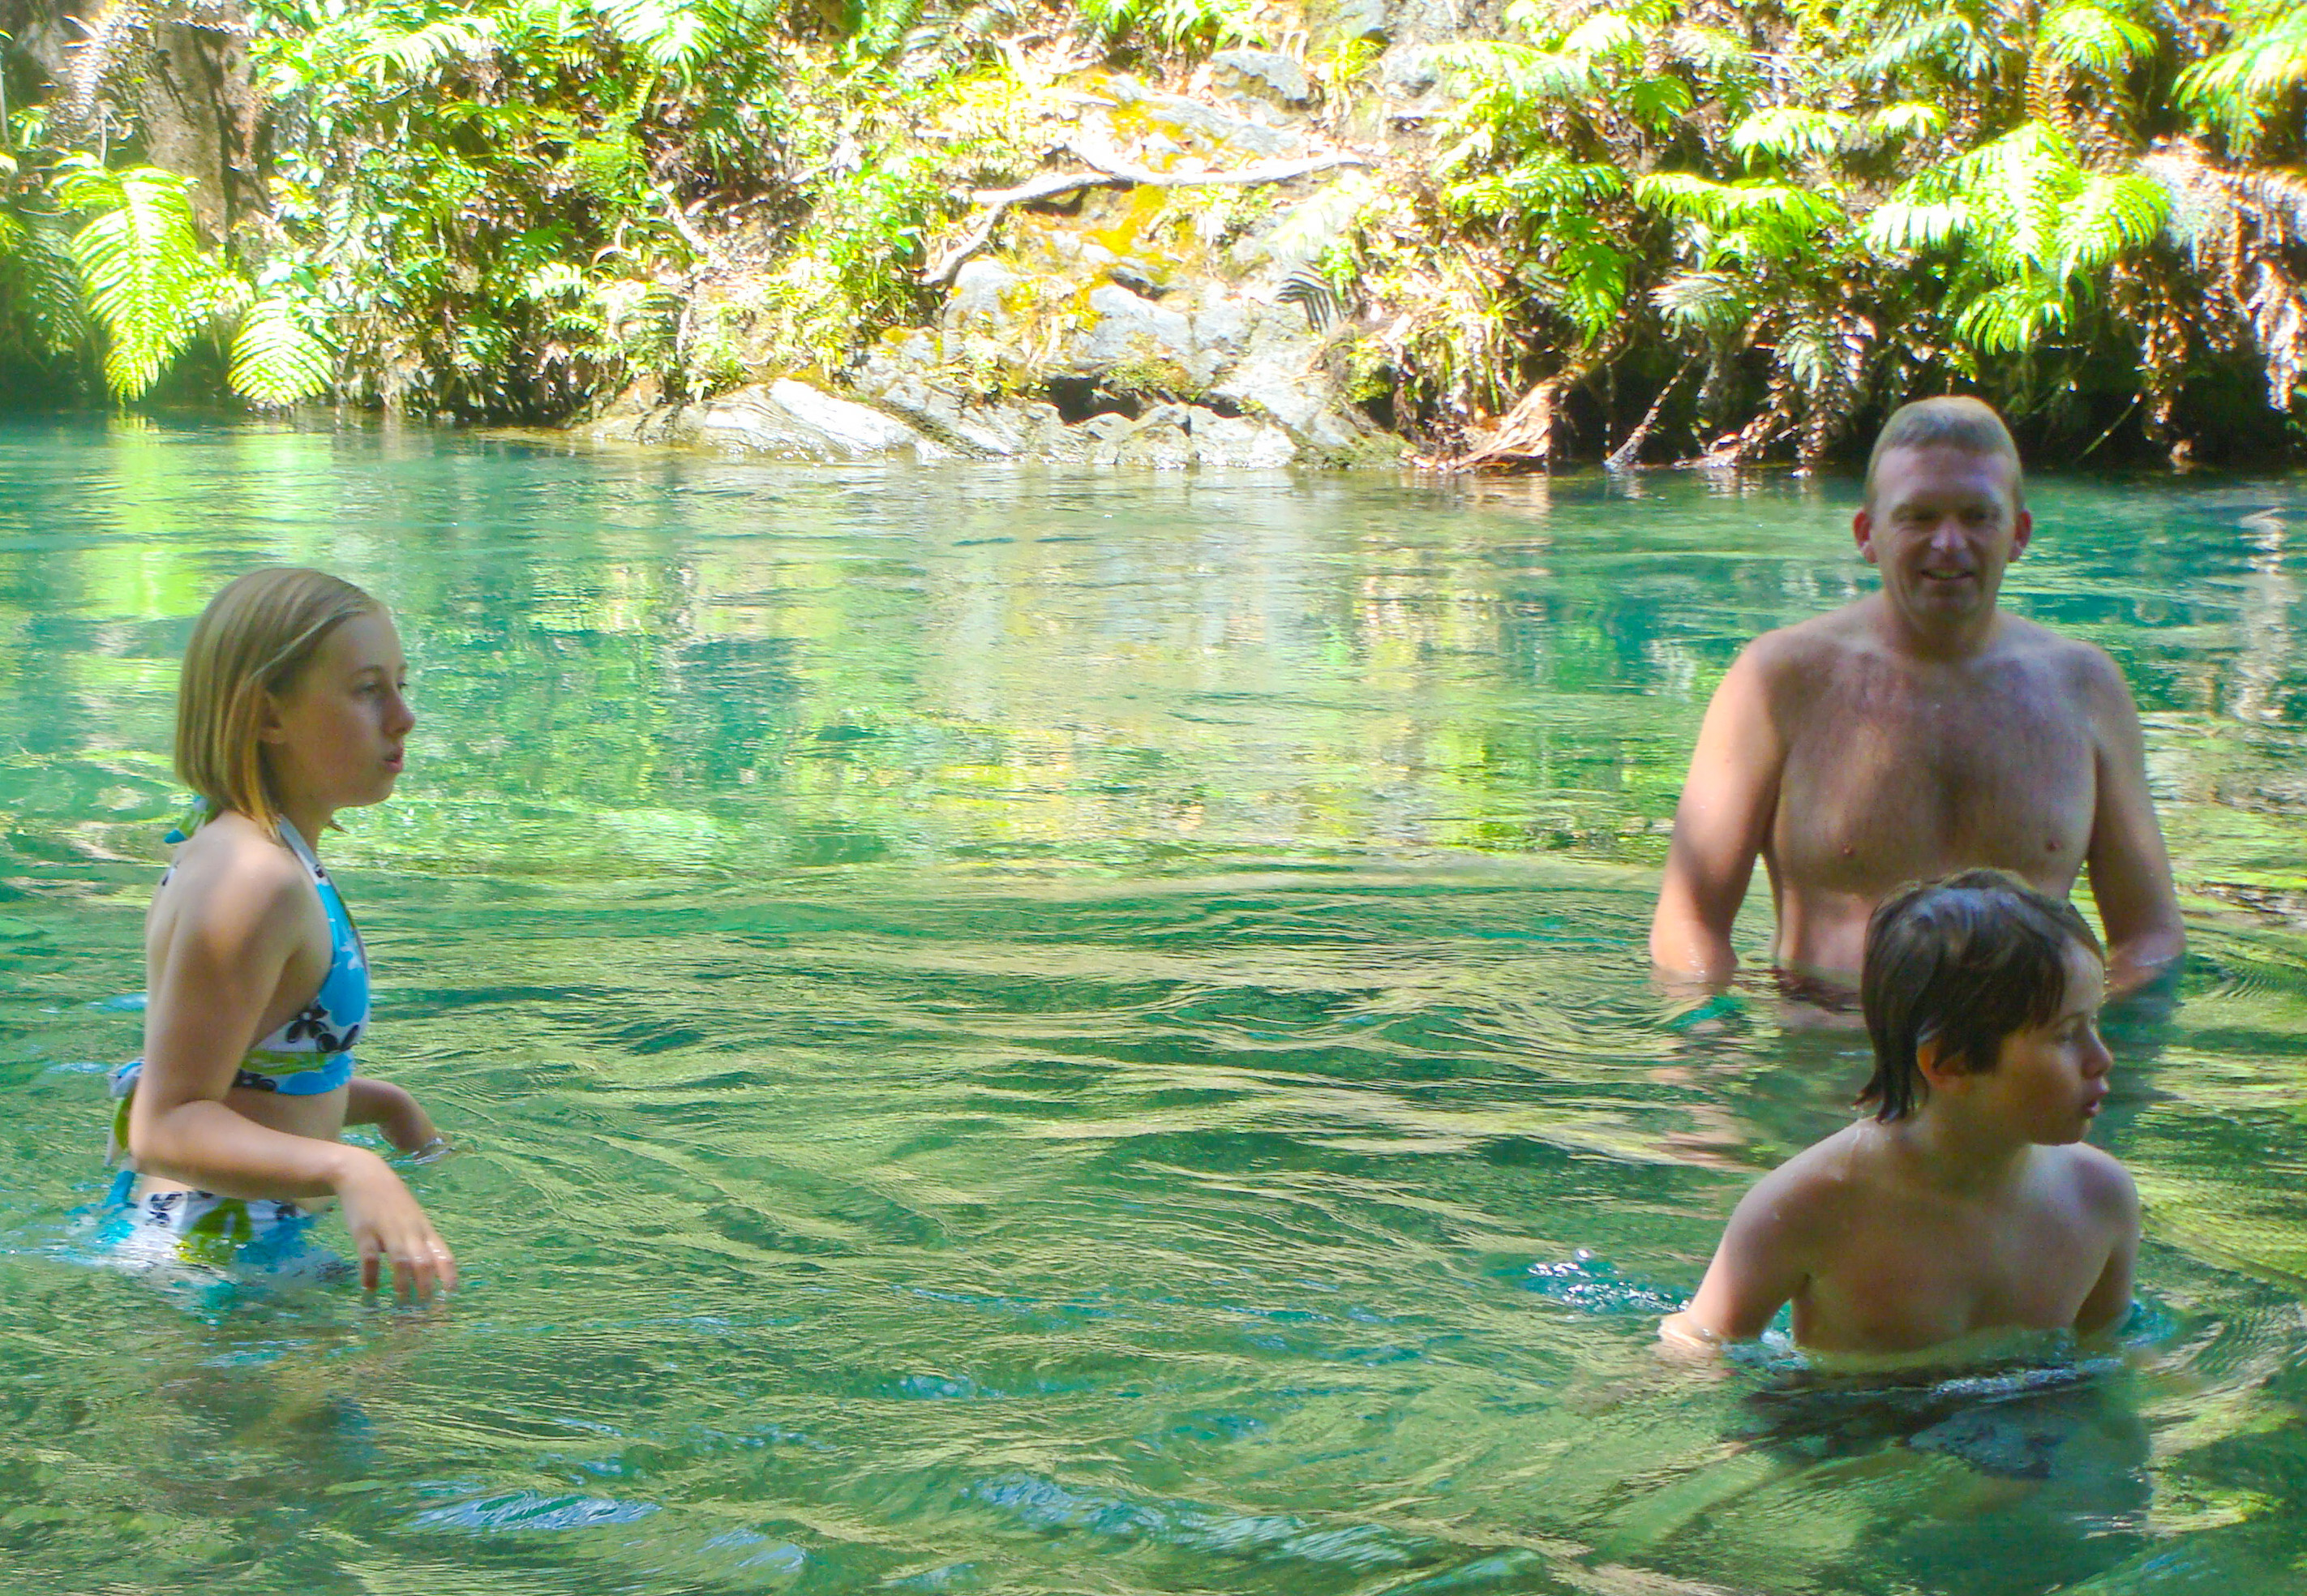 My kiddos Colly and Kyle swimming in the river next to the Tarawera race course, with Paul Charteris, in January 2010.